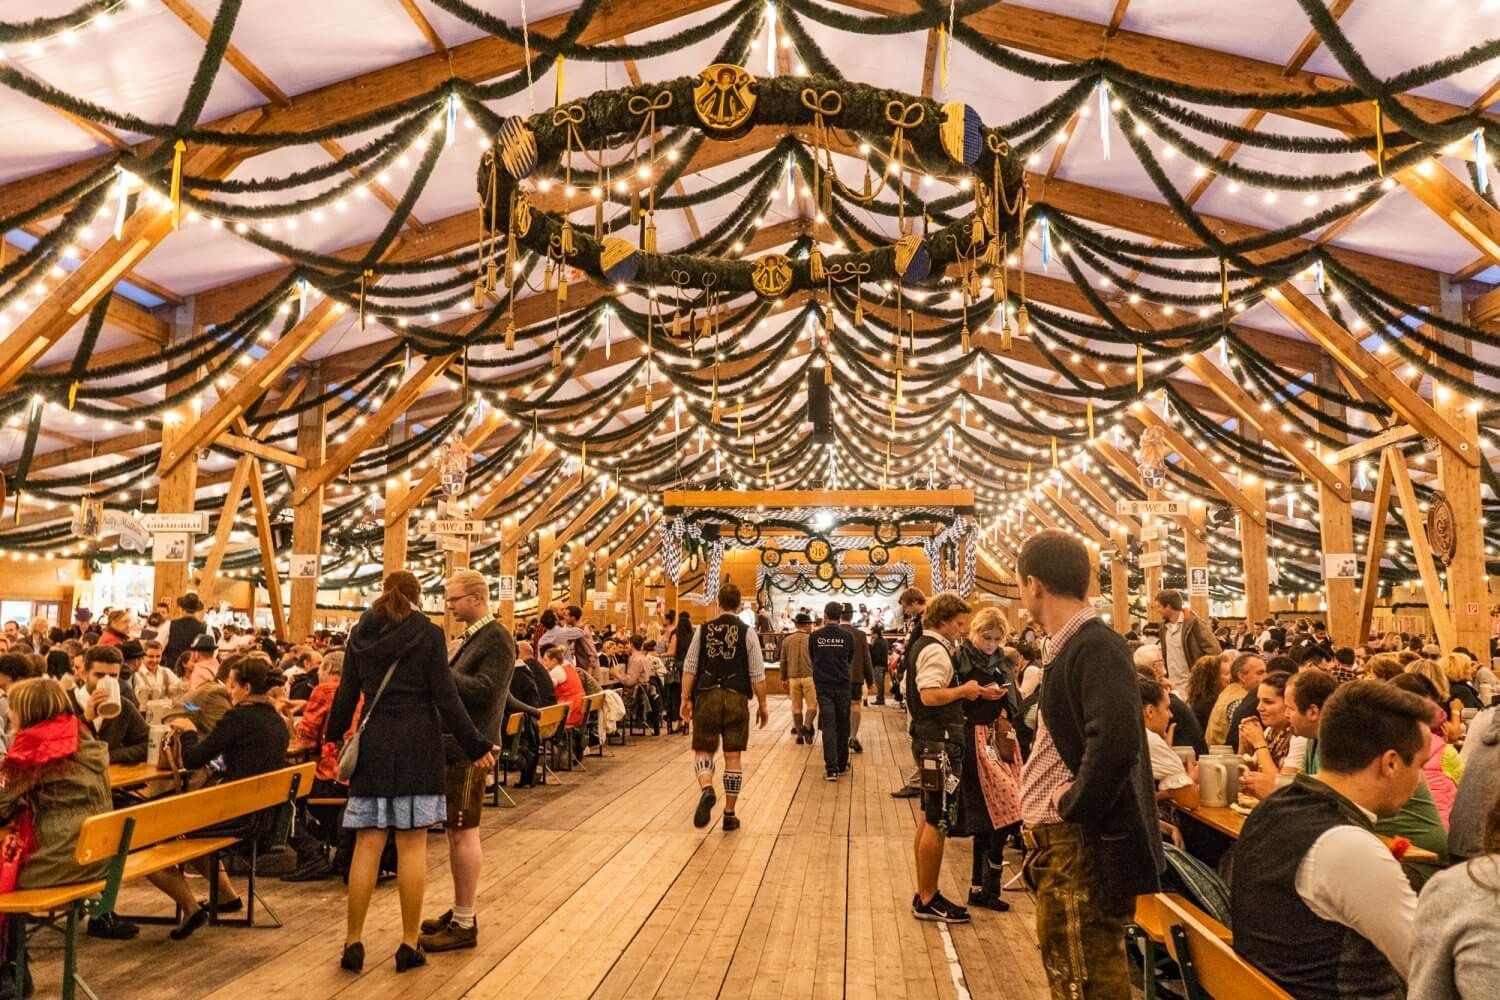 How To Get Into A Beer Tent At Oktoberfest